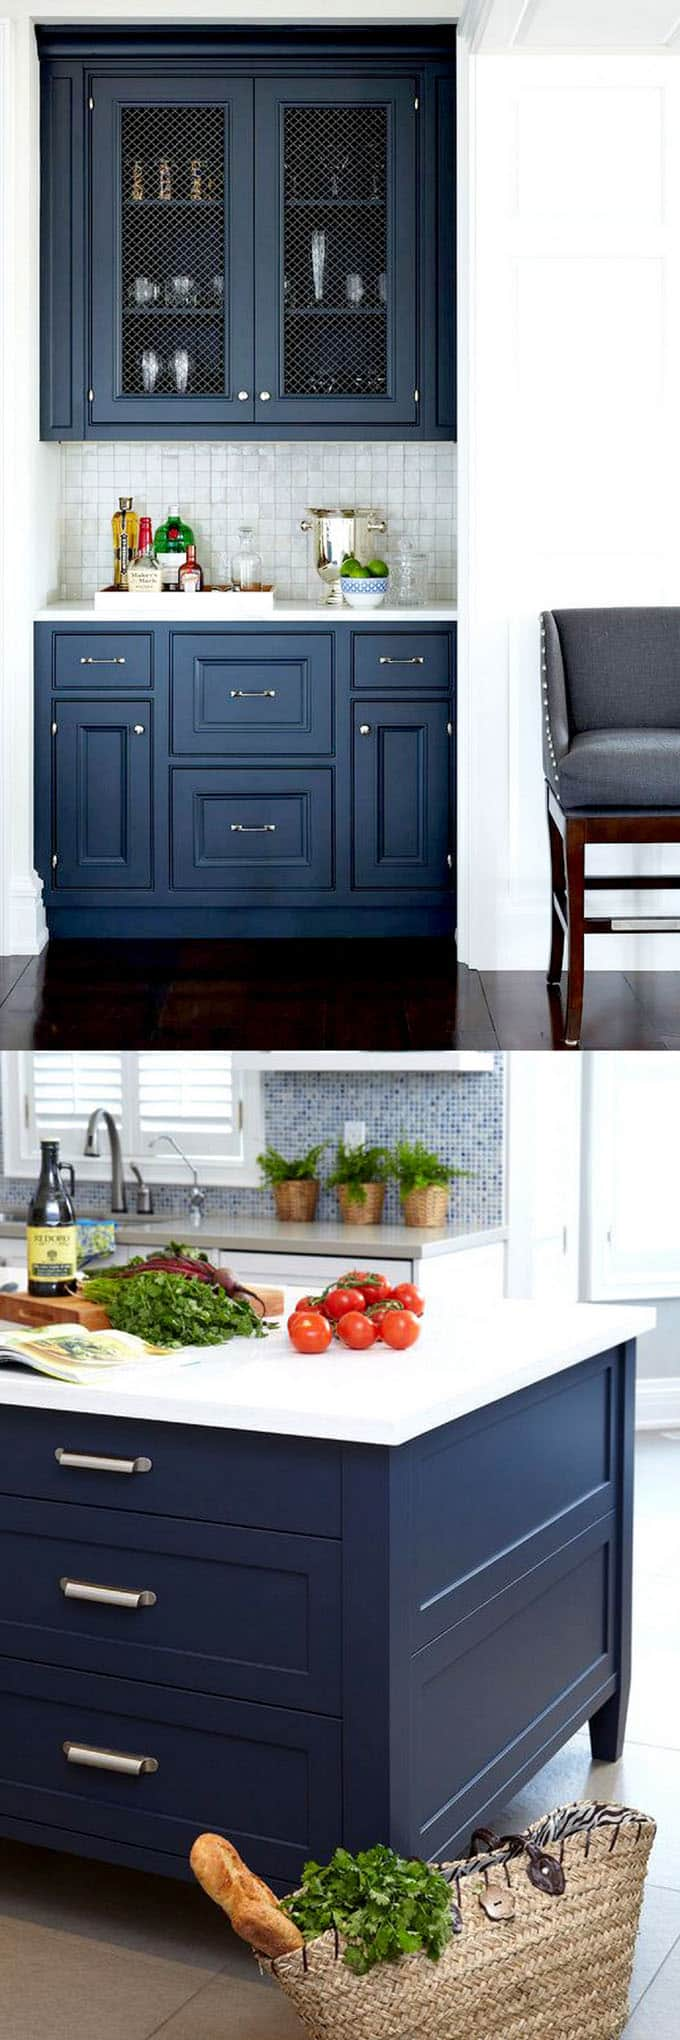 25 Beautiful Paint Colors For Kitchen Cabinets Apieceofrainbowblog